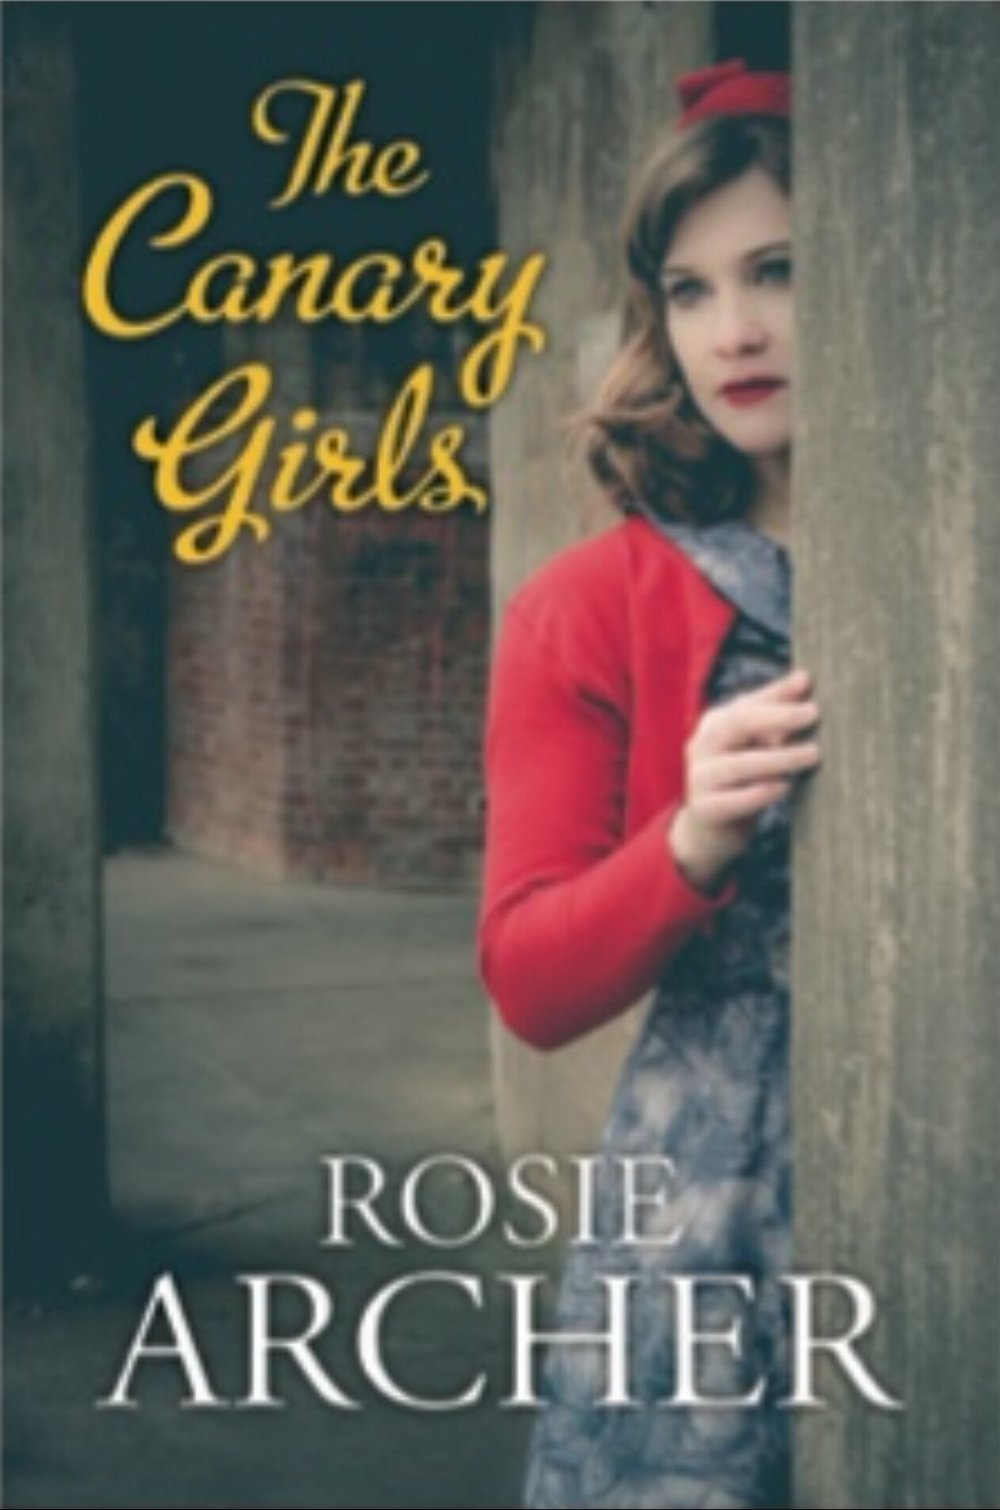 The Canary Girls - Rosie Archer.jpg